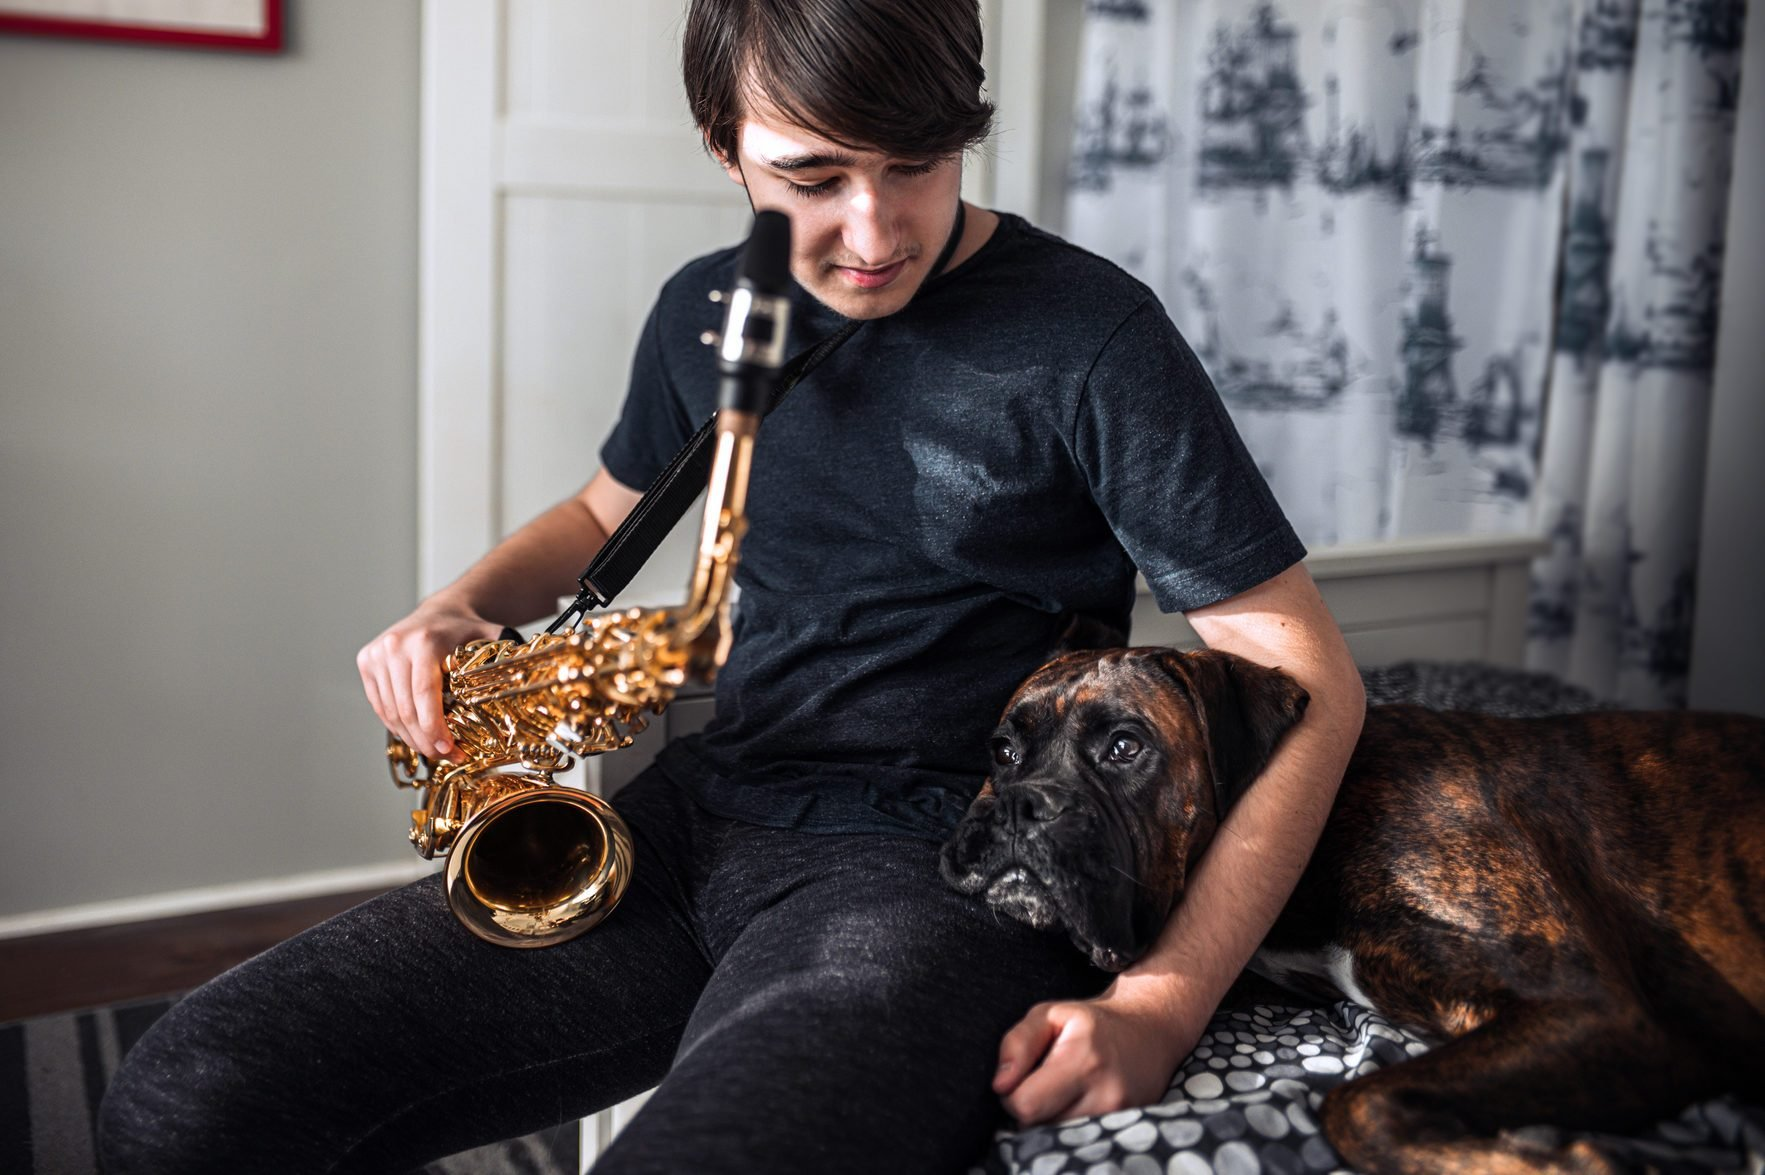 Teenager playing sax in his room